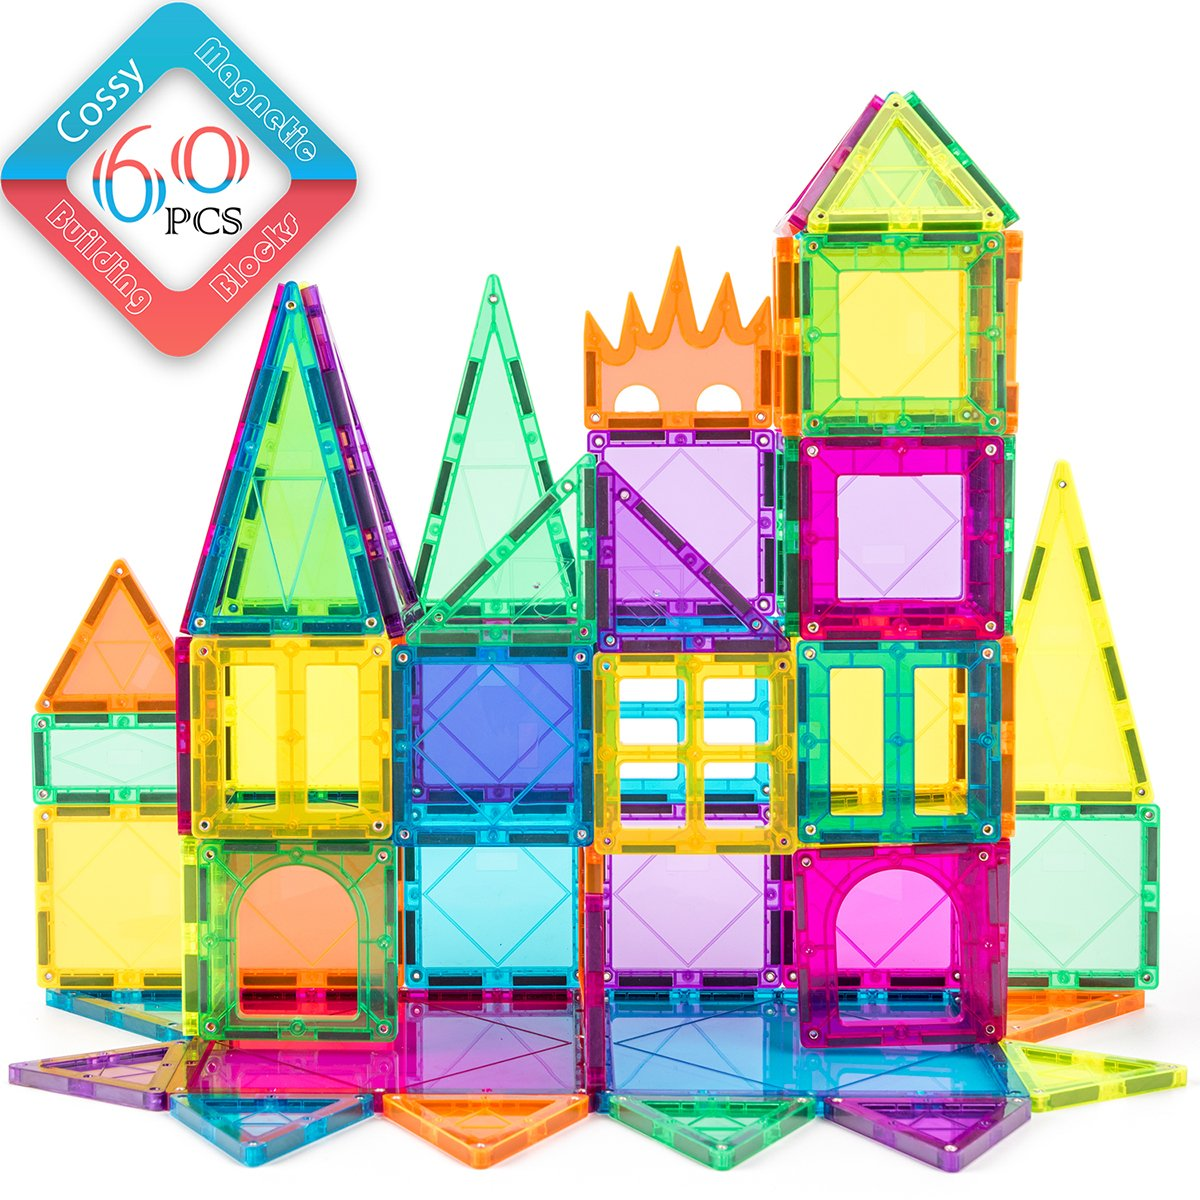 Cossy 60 Pcs Magnet Tiles Magnetic 3D Building Blocks Set Educational Construction Toys for 3+ year Kids with Stronger Magnets, Rivets-Fastened, Inspirational, Recreational, Educational, Conventional